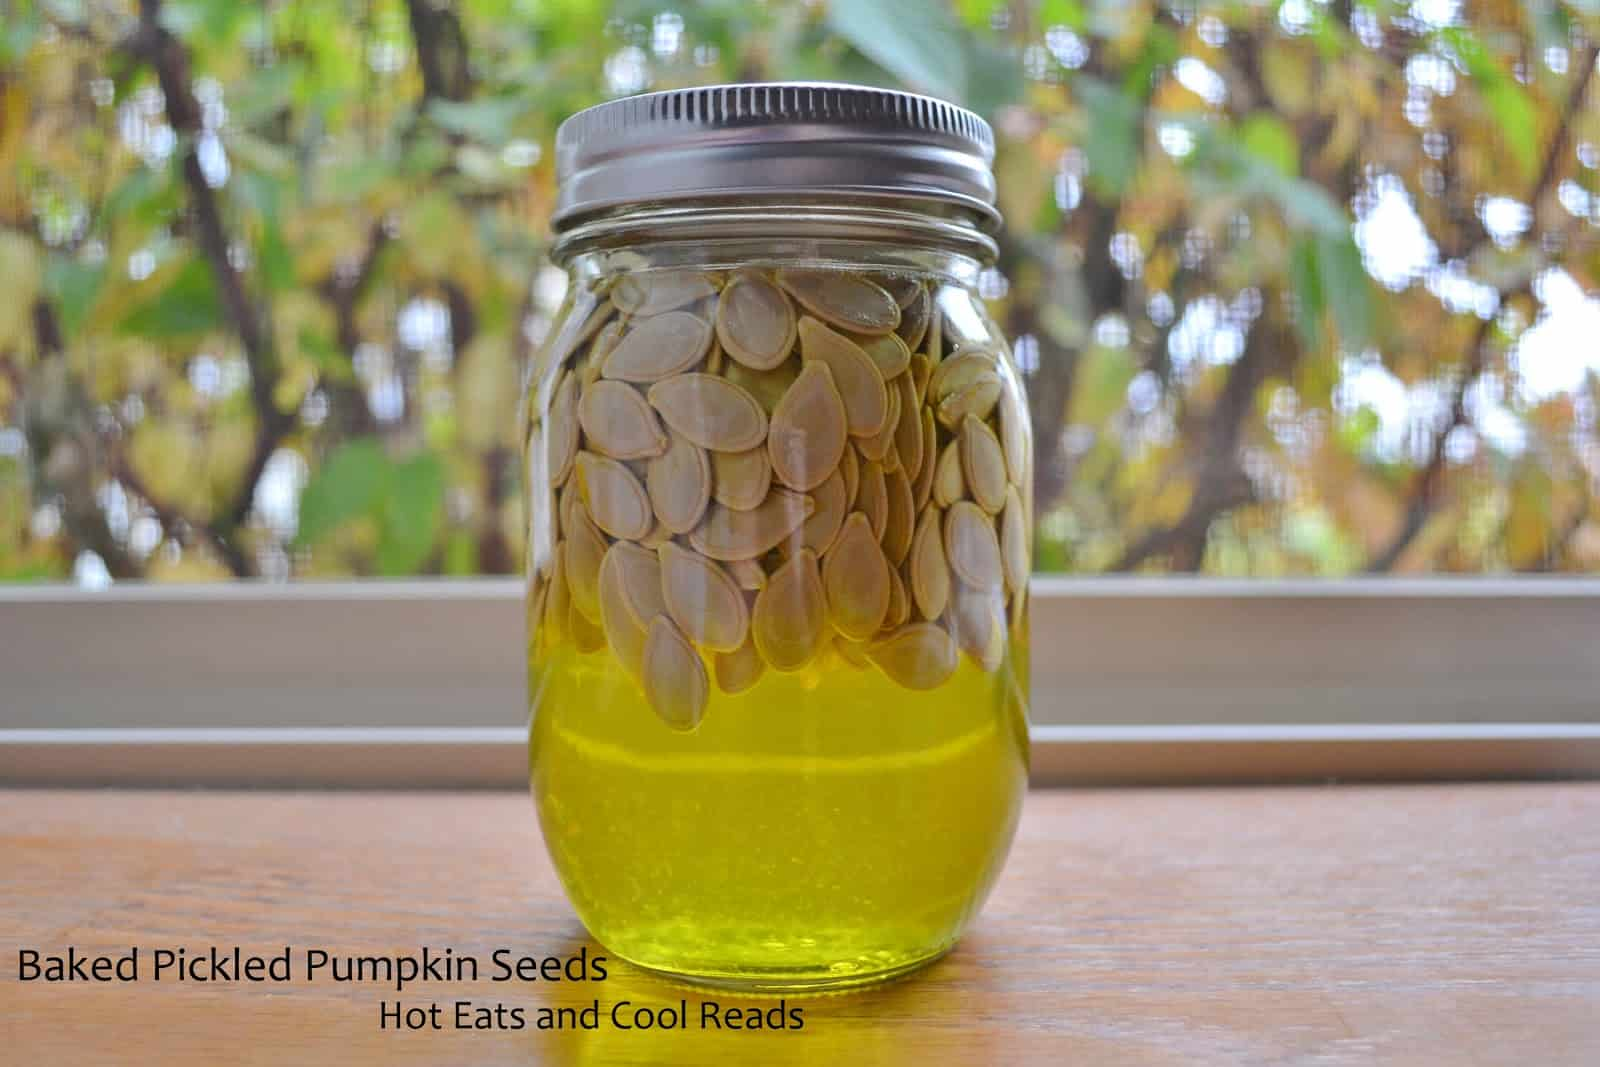 Baked pickled pumpkin seeds